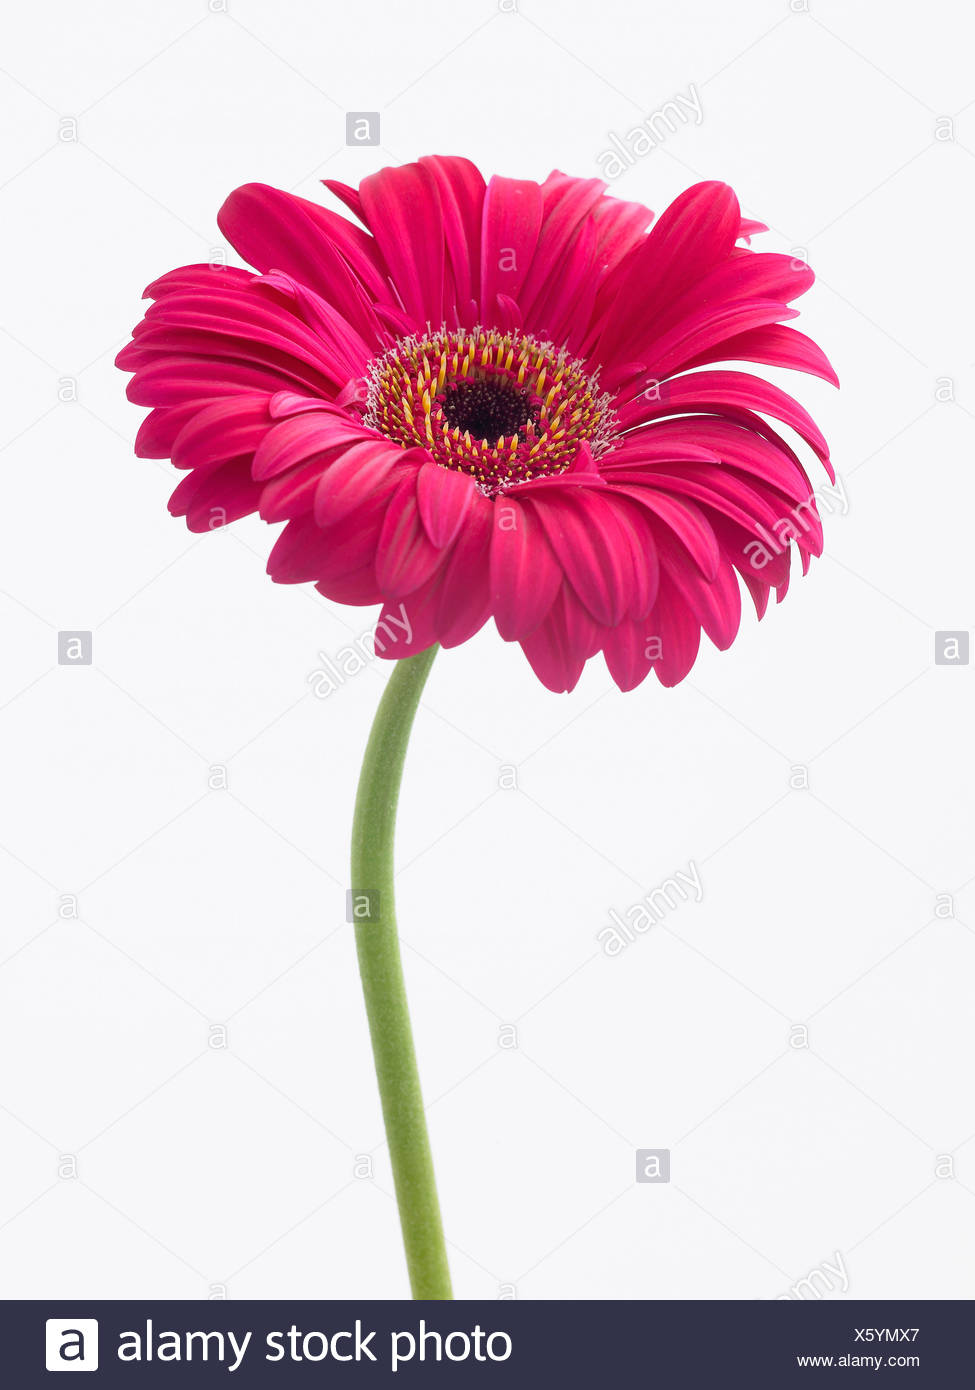 Gerbera Explorer Single Pink Flower On A Stem Against A White